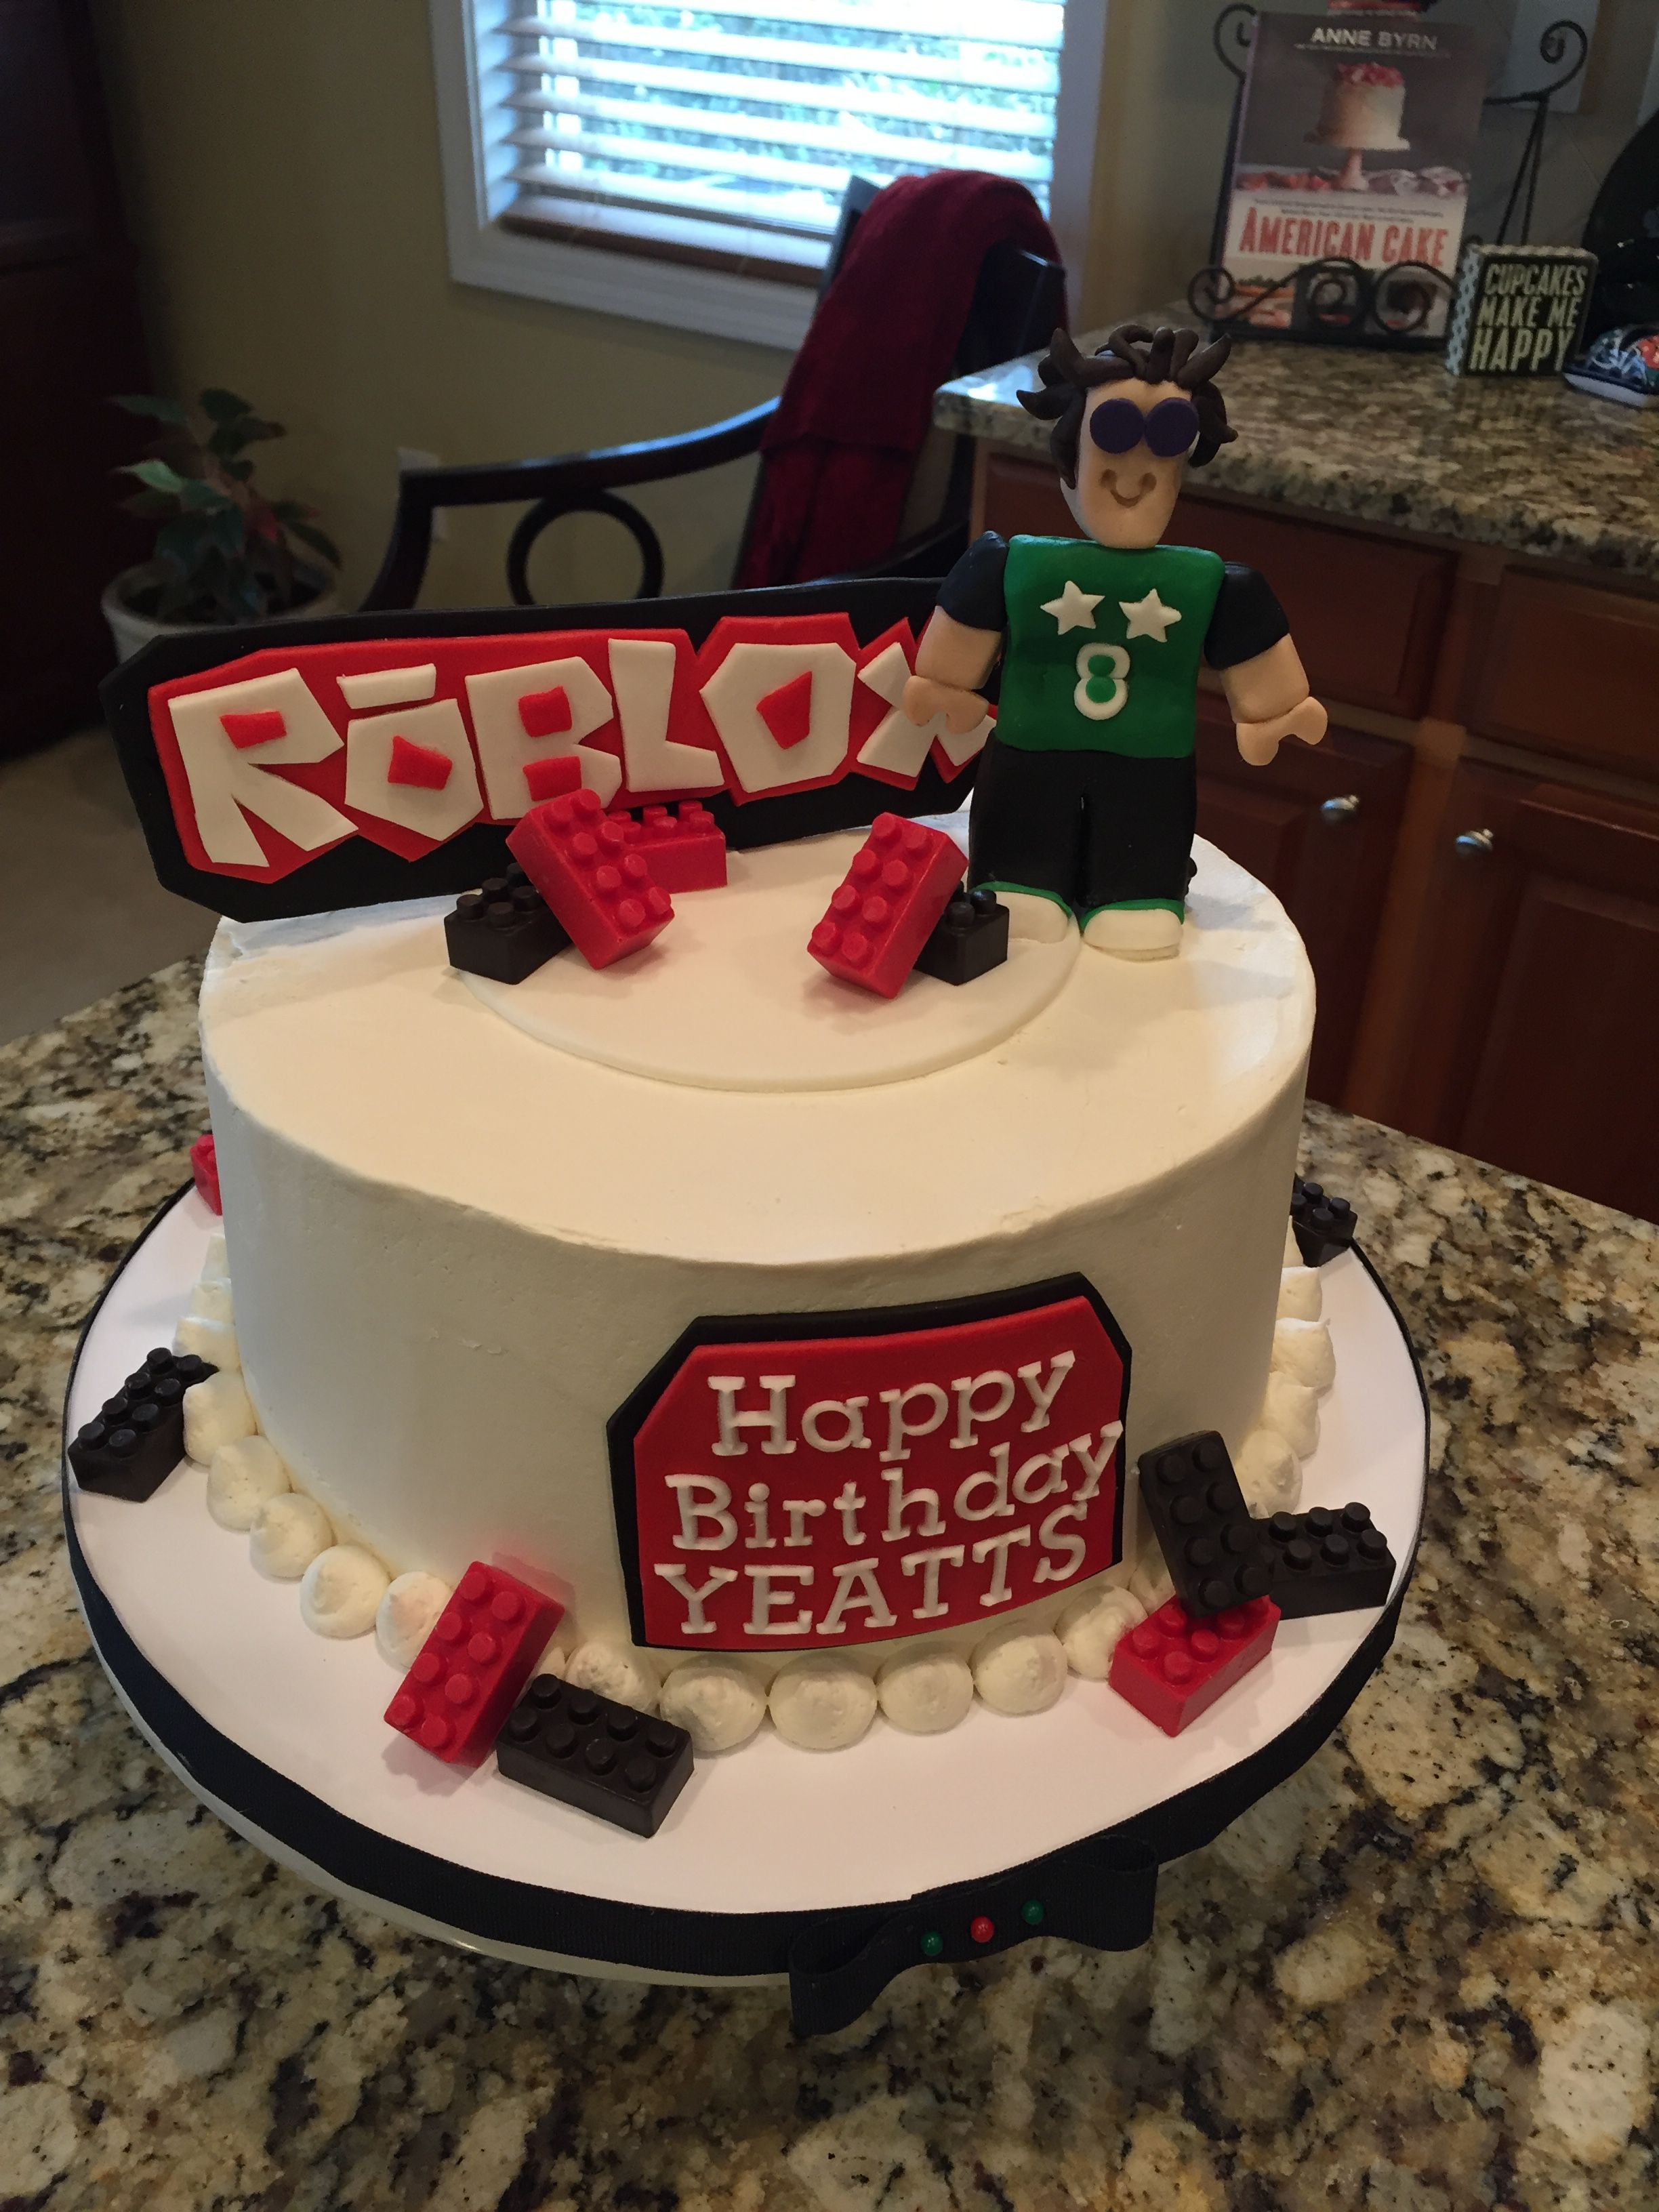 Roblox Cake Theme Happy Birthday Yeatts Roblox Birthday Cake